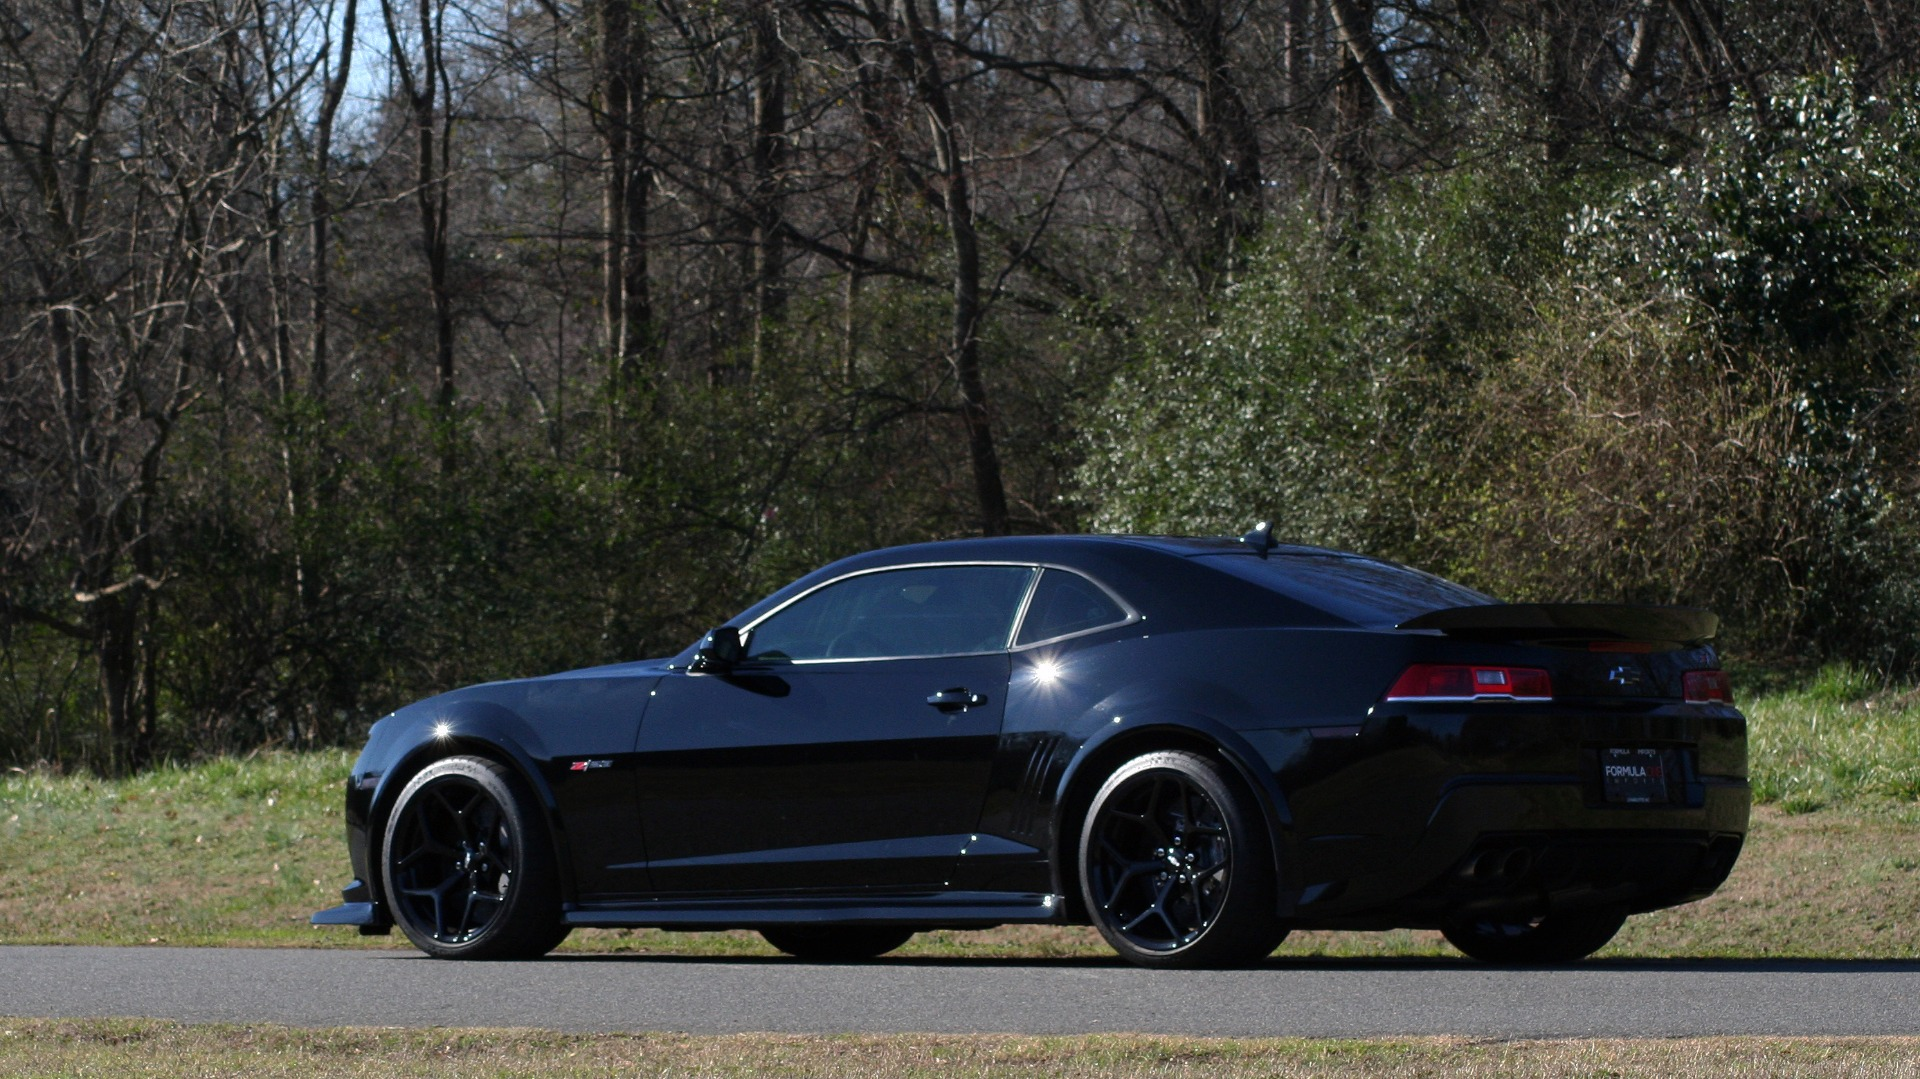 Used 2014 Chevrolet CAMARO Z/28 / 427 7.0L V8 505HP / RADIO / AIR CONDITIONING for sale Sold at Formula Imports in Charlotte NC 28227 7